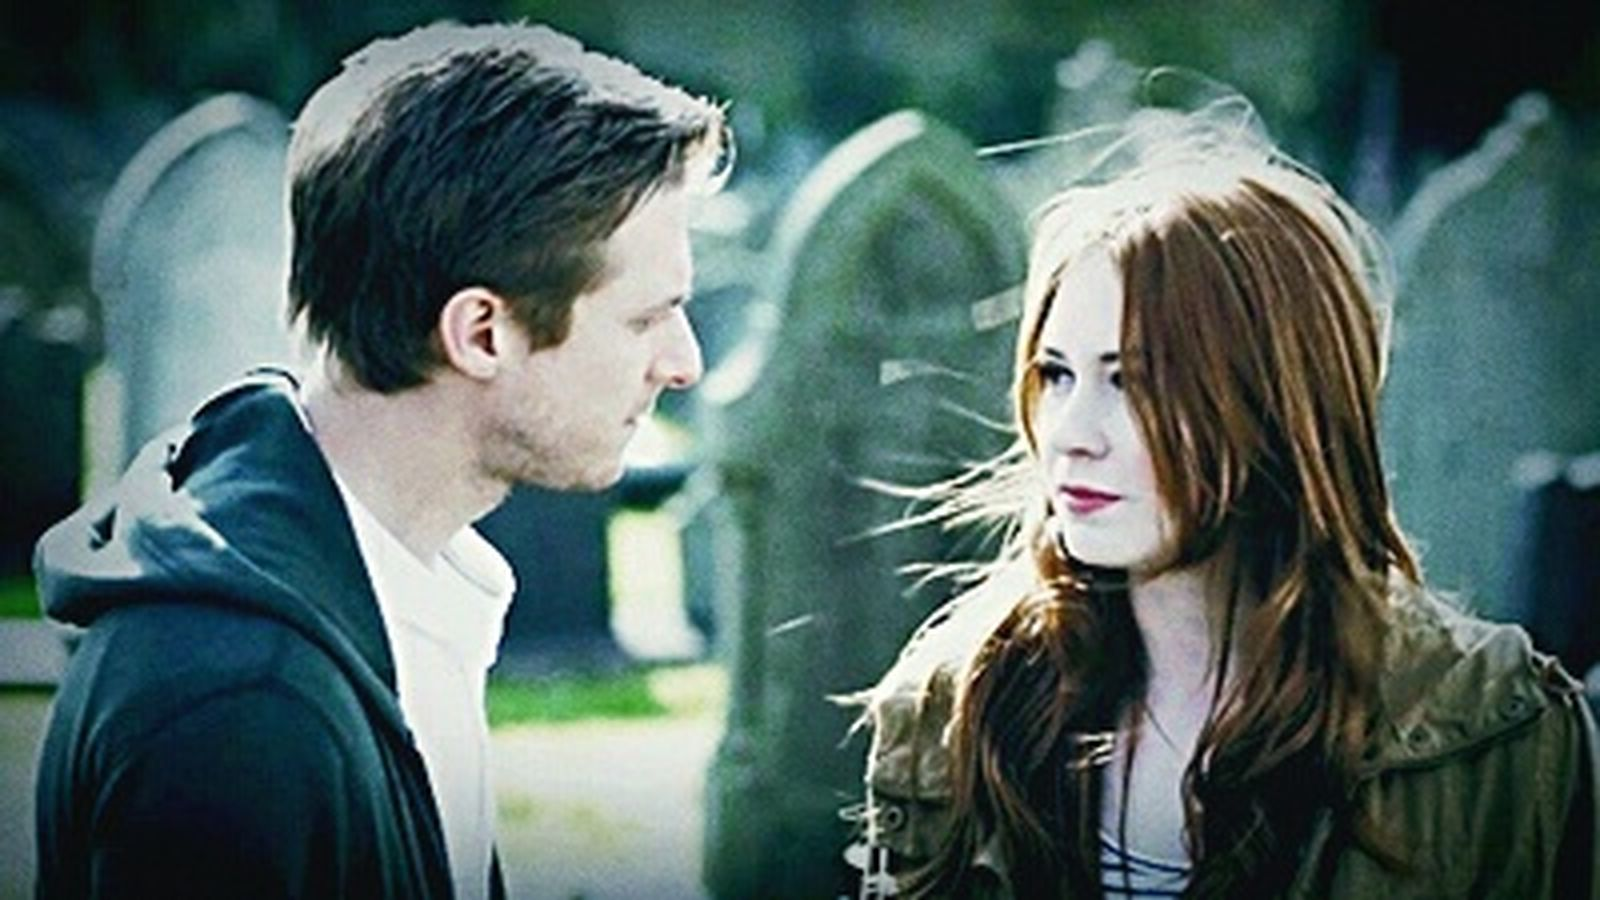 The Ponds Doctorwho Amy Pond-williams Rory Williams